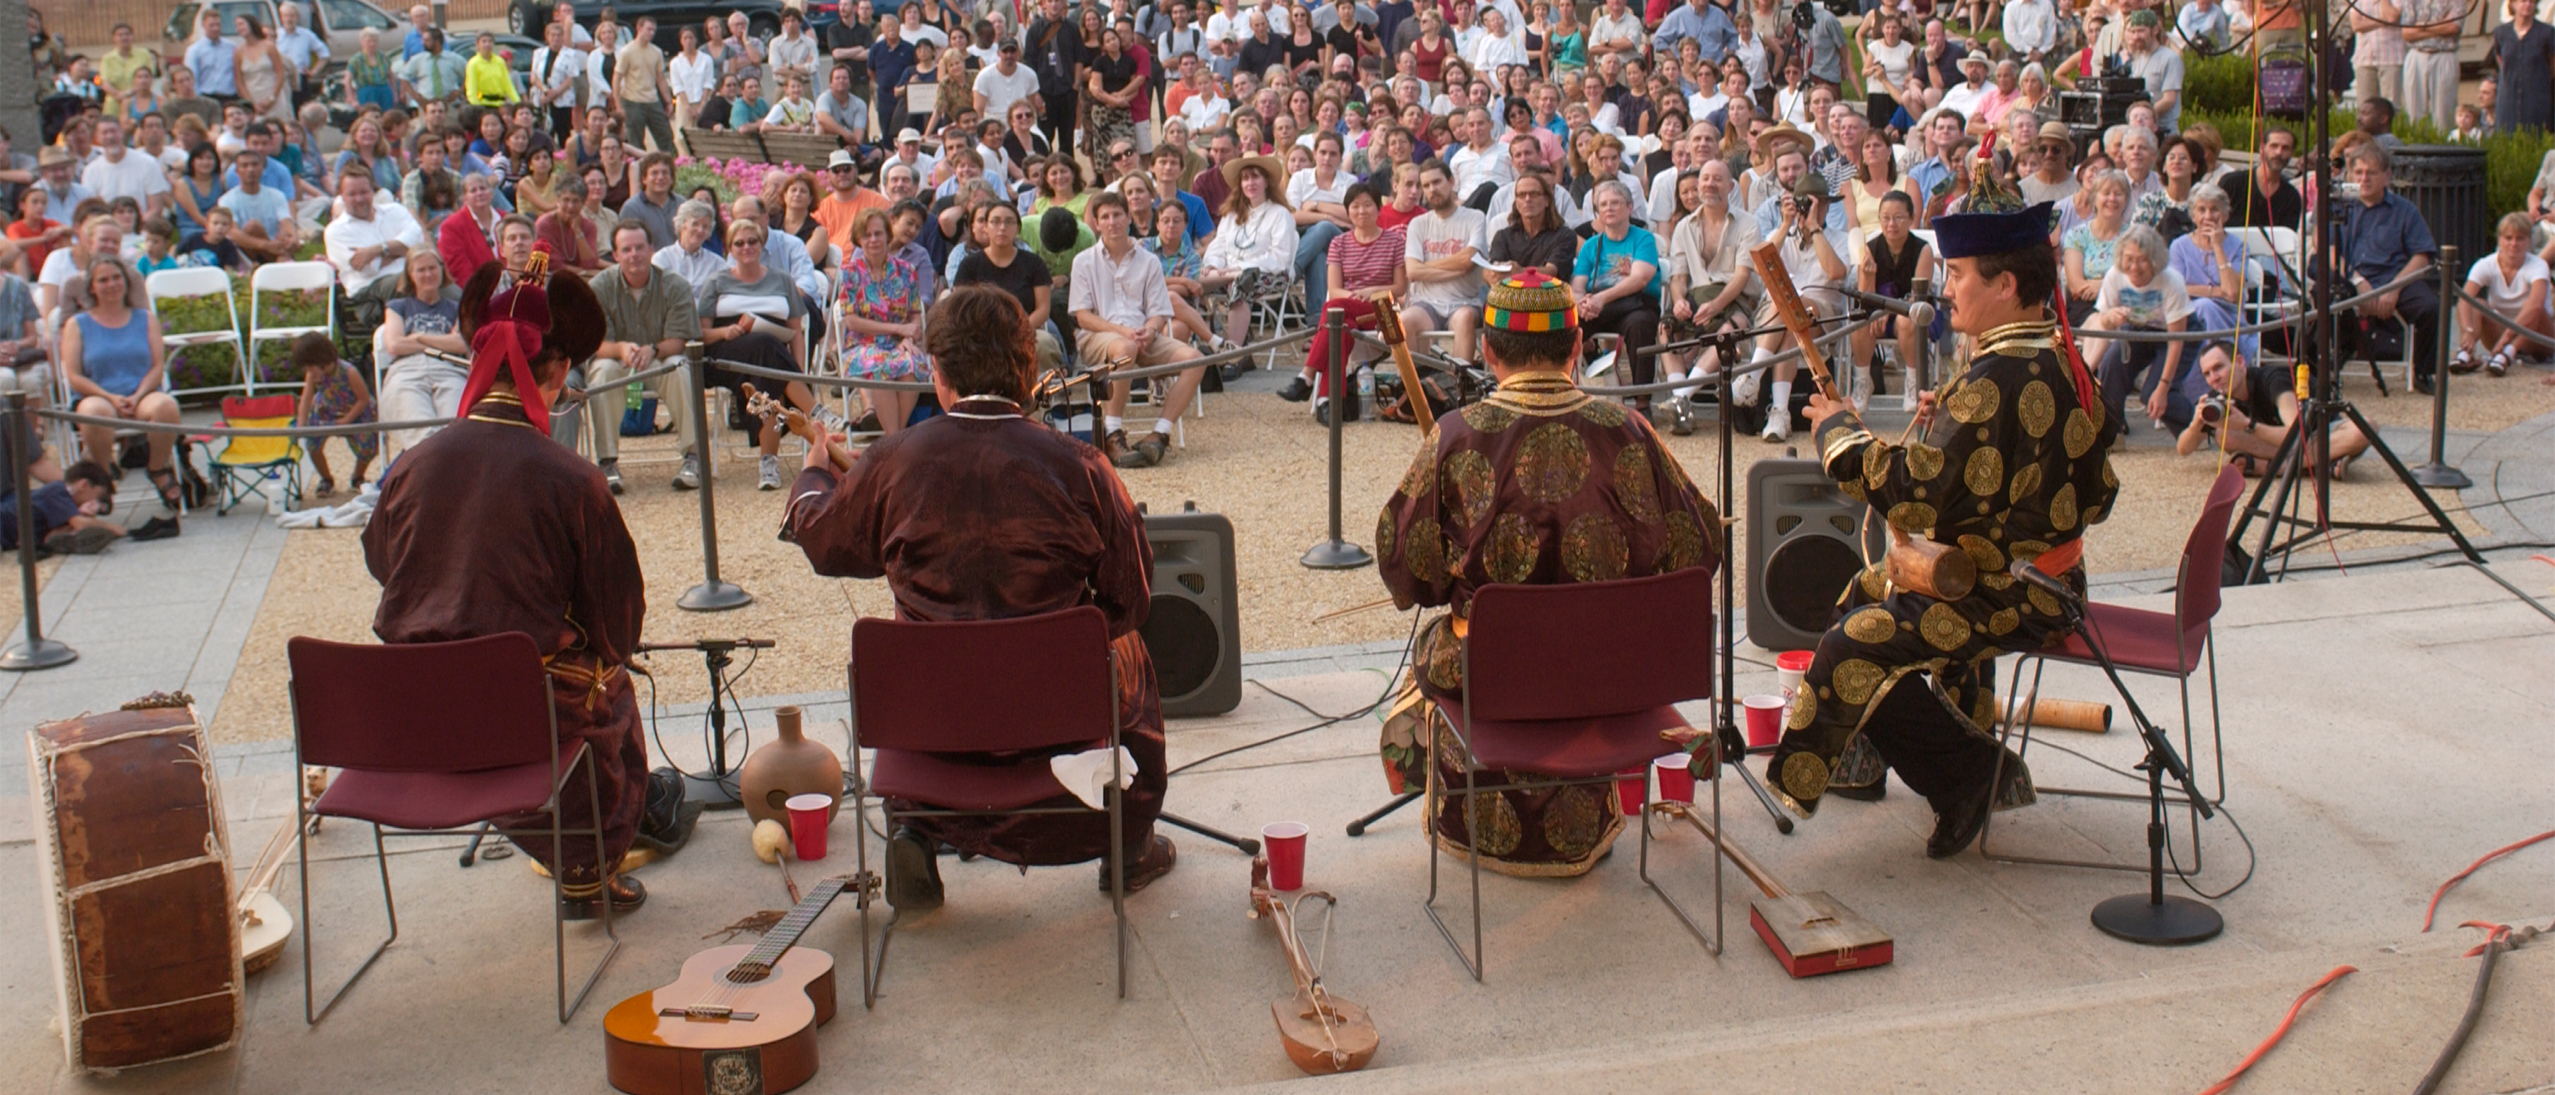 Virtuosos from the Siberian republic of Tuva sing on the steps of the Freer Gallery of Art in 2002.